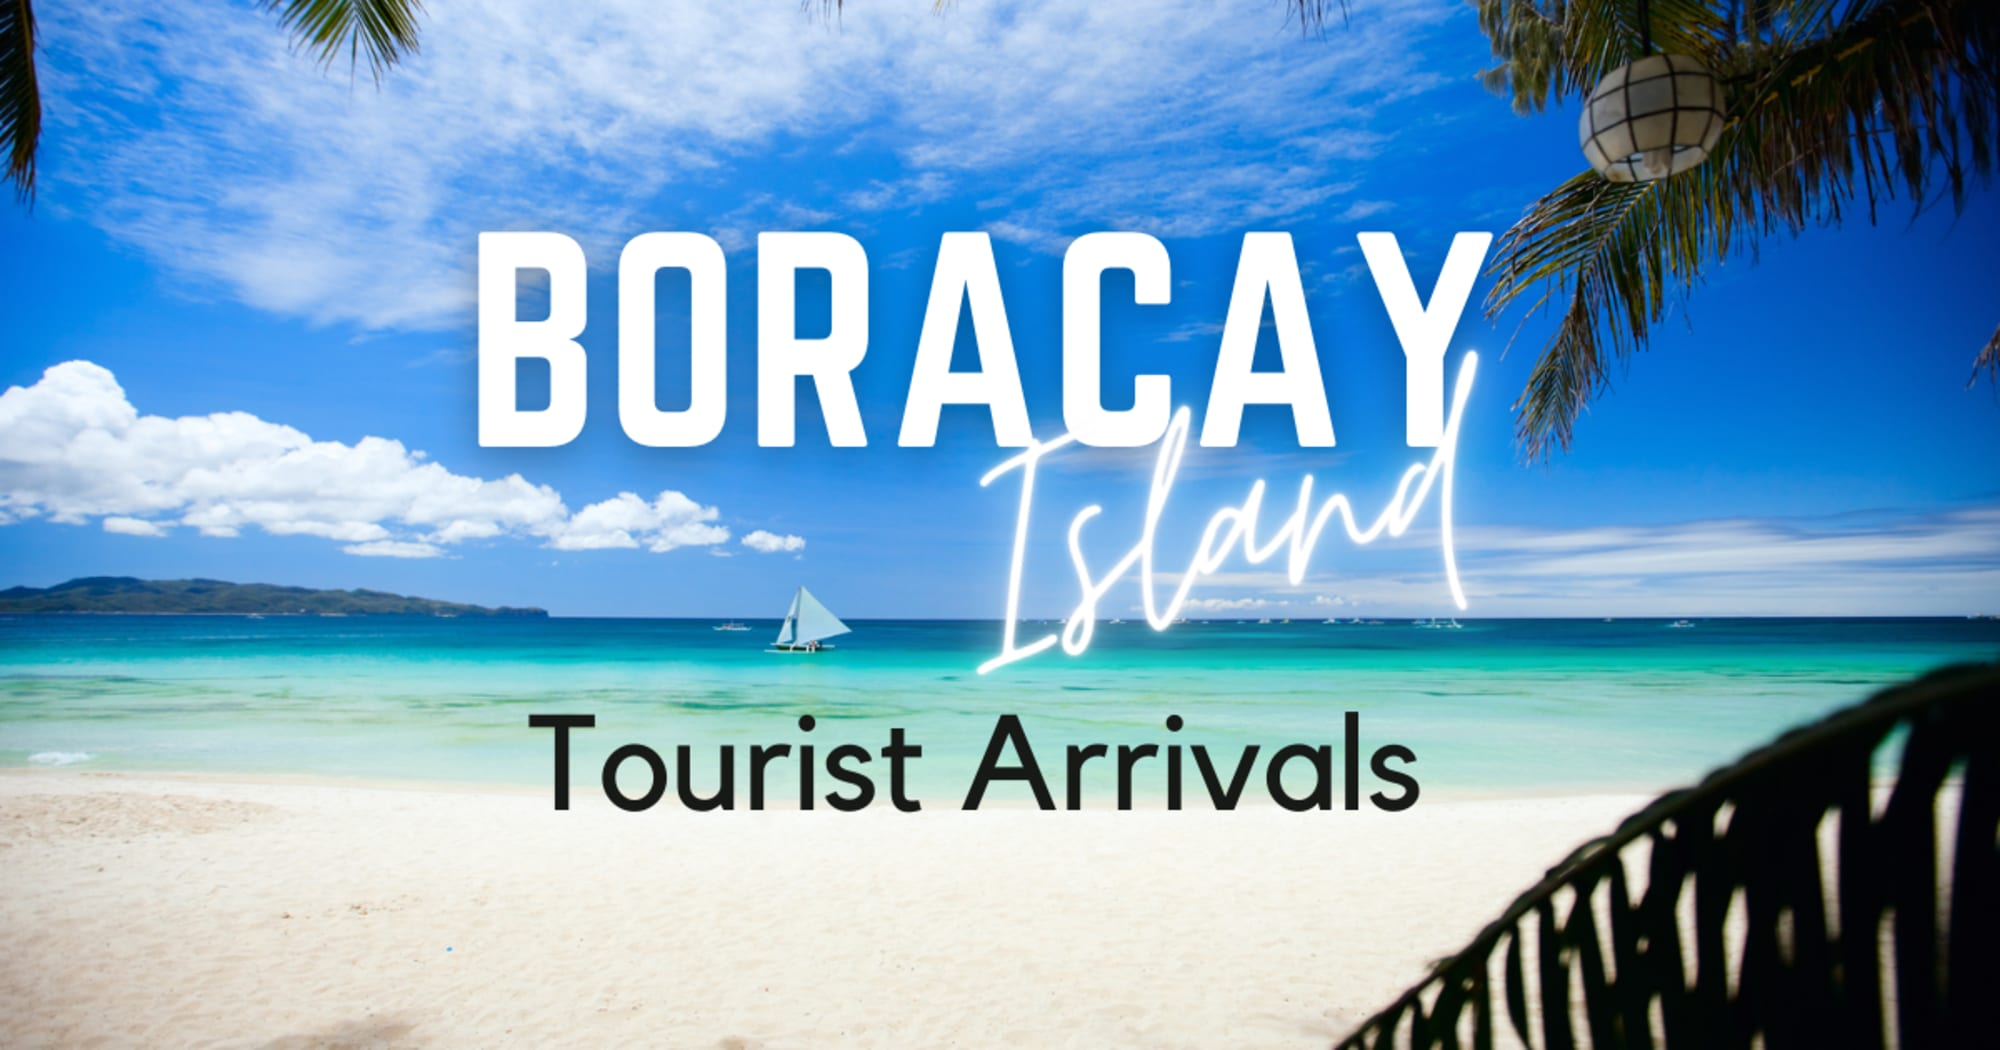 72 tourists visited Boracay Island after its reopening last September 8